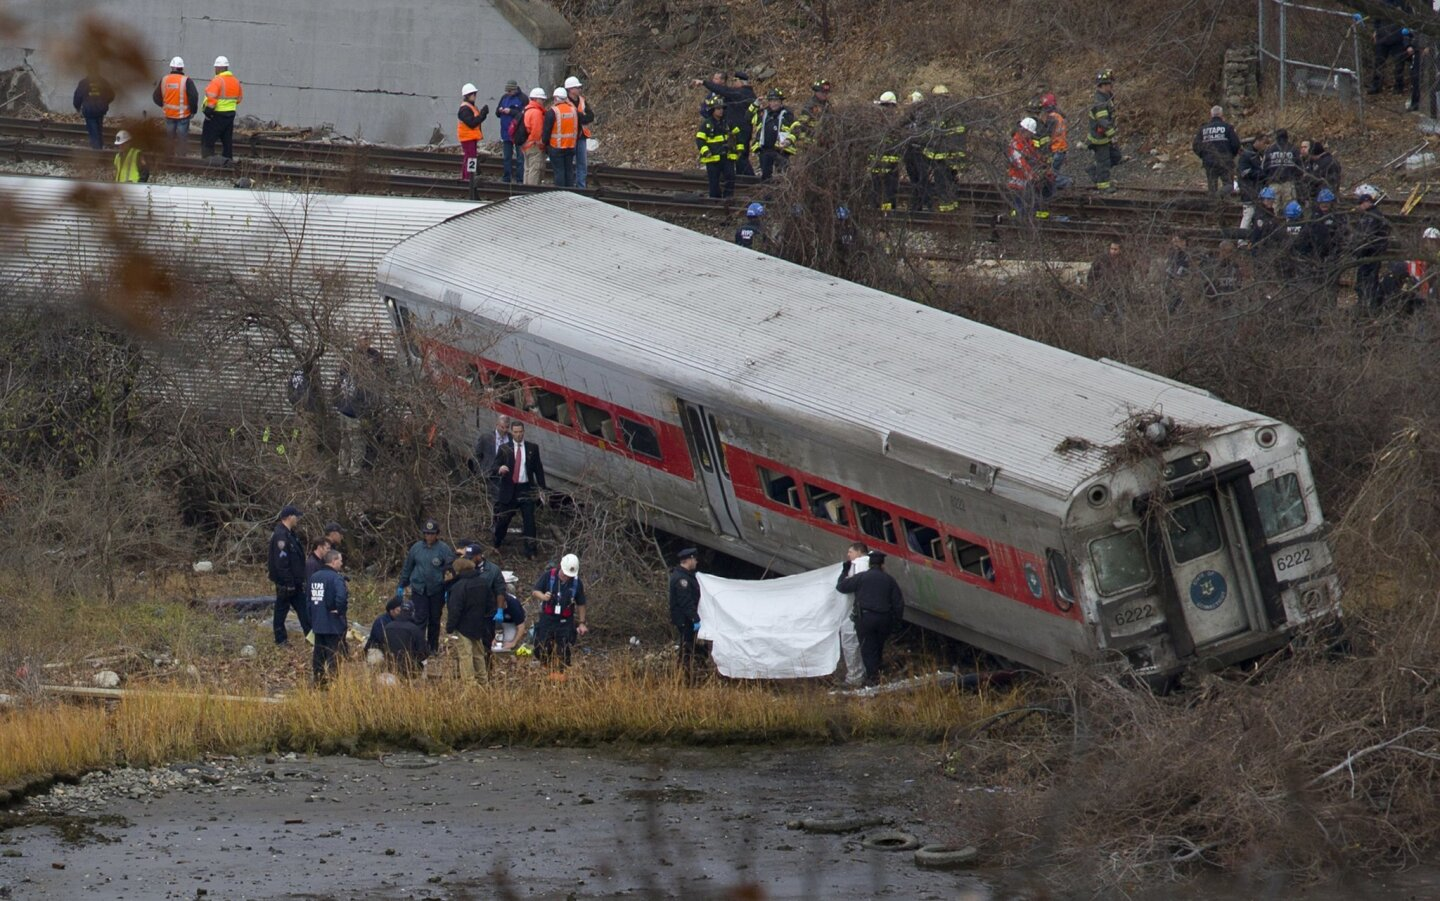 Viewed from Manhattan, first responders and others work at the scene of a  derailed Metro North passenger train in the Bronx borough of New York Dec. 1, 2013. The train derailed on a curved section of track in the Bronx early Sunday, coming to rest just inches from the water, killing at least four